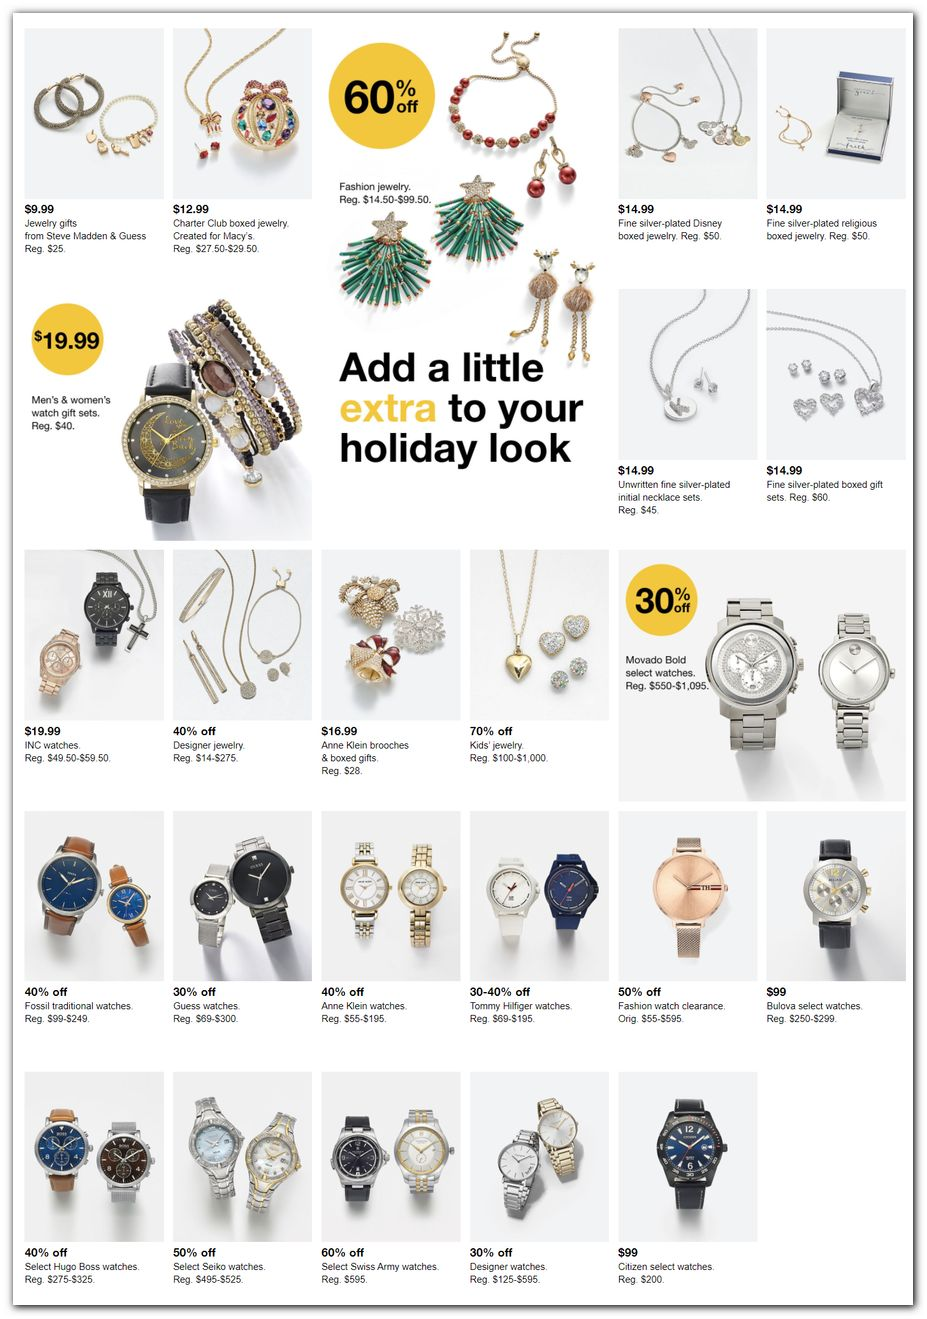 Watches / Jewelry Gifts